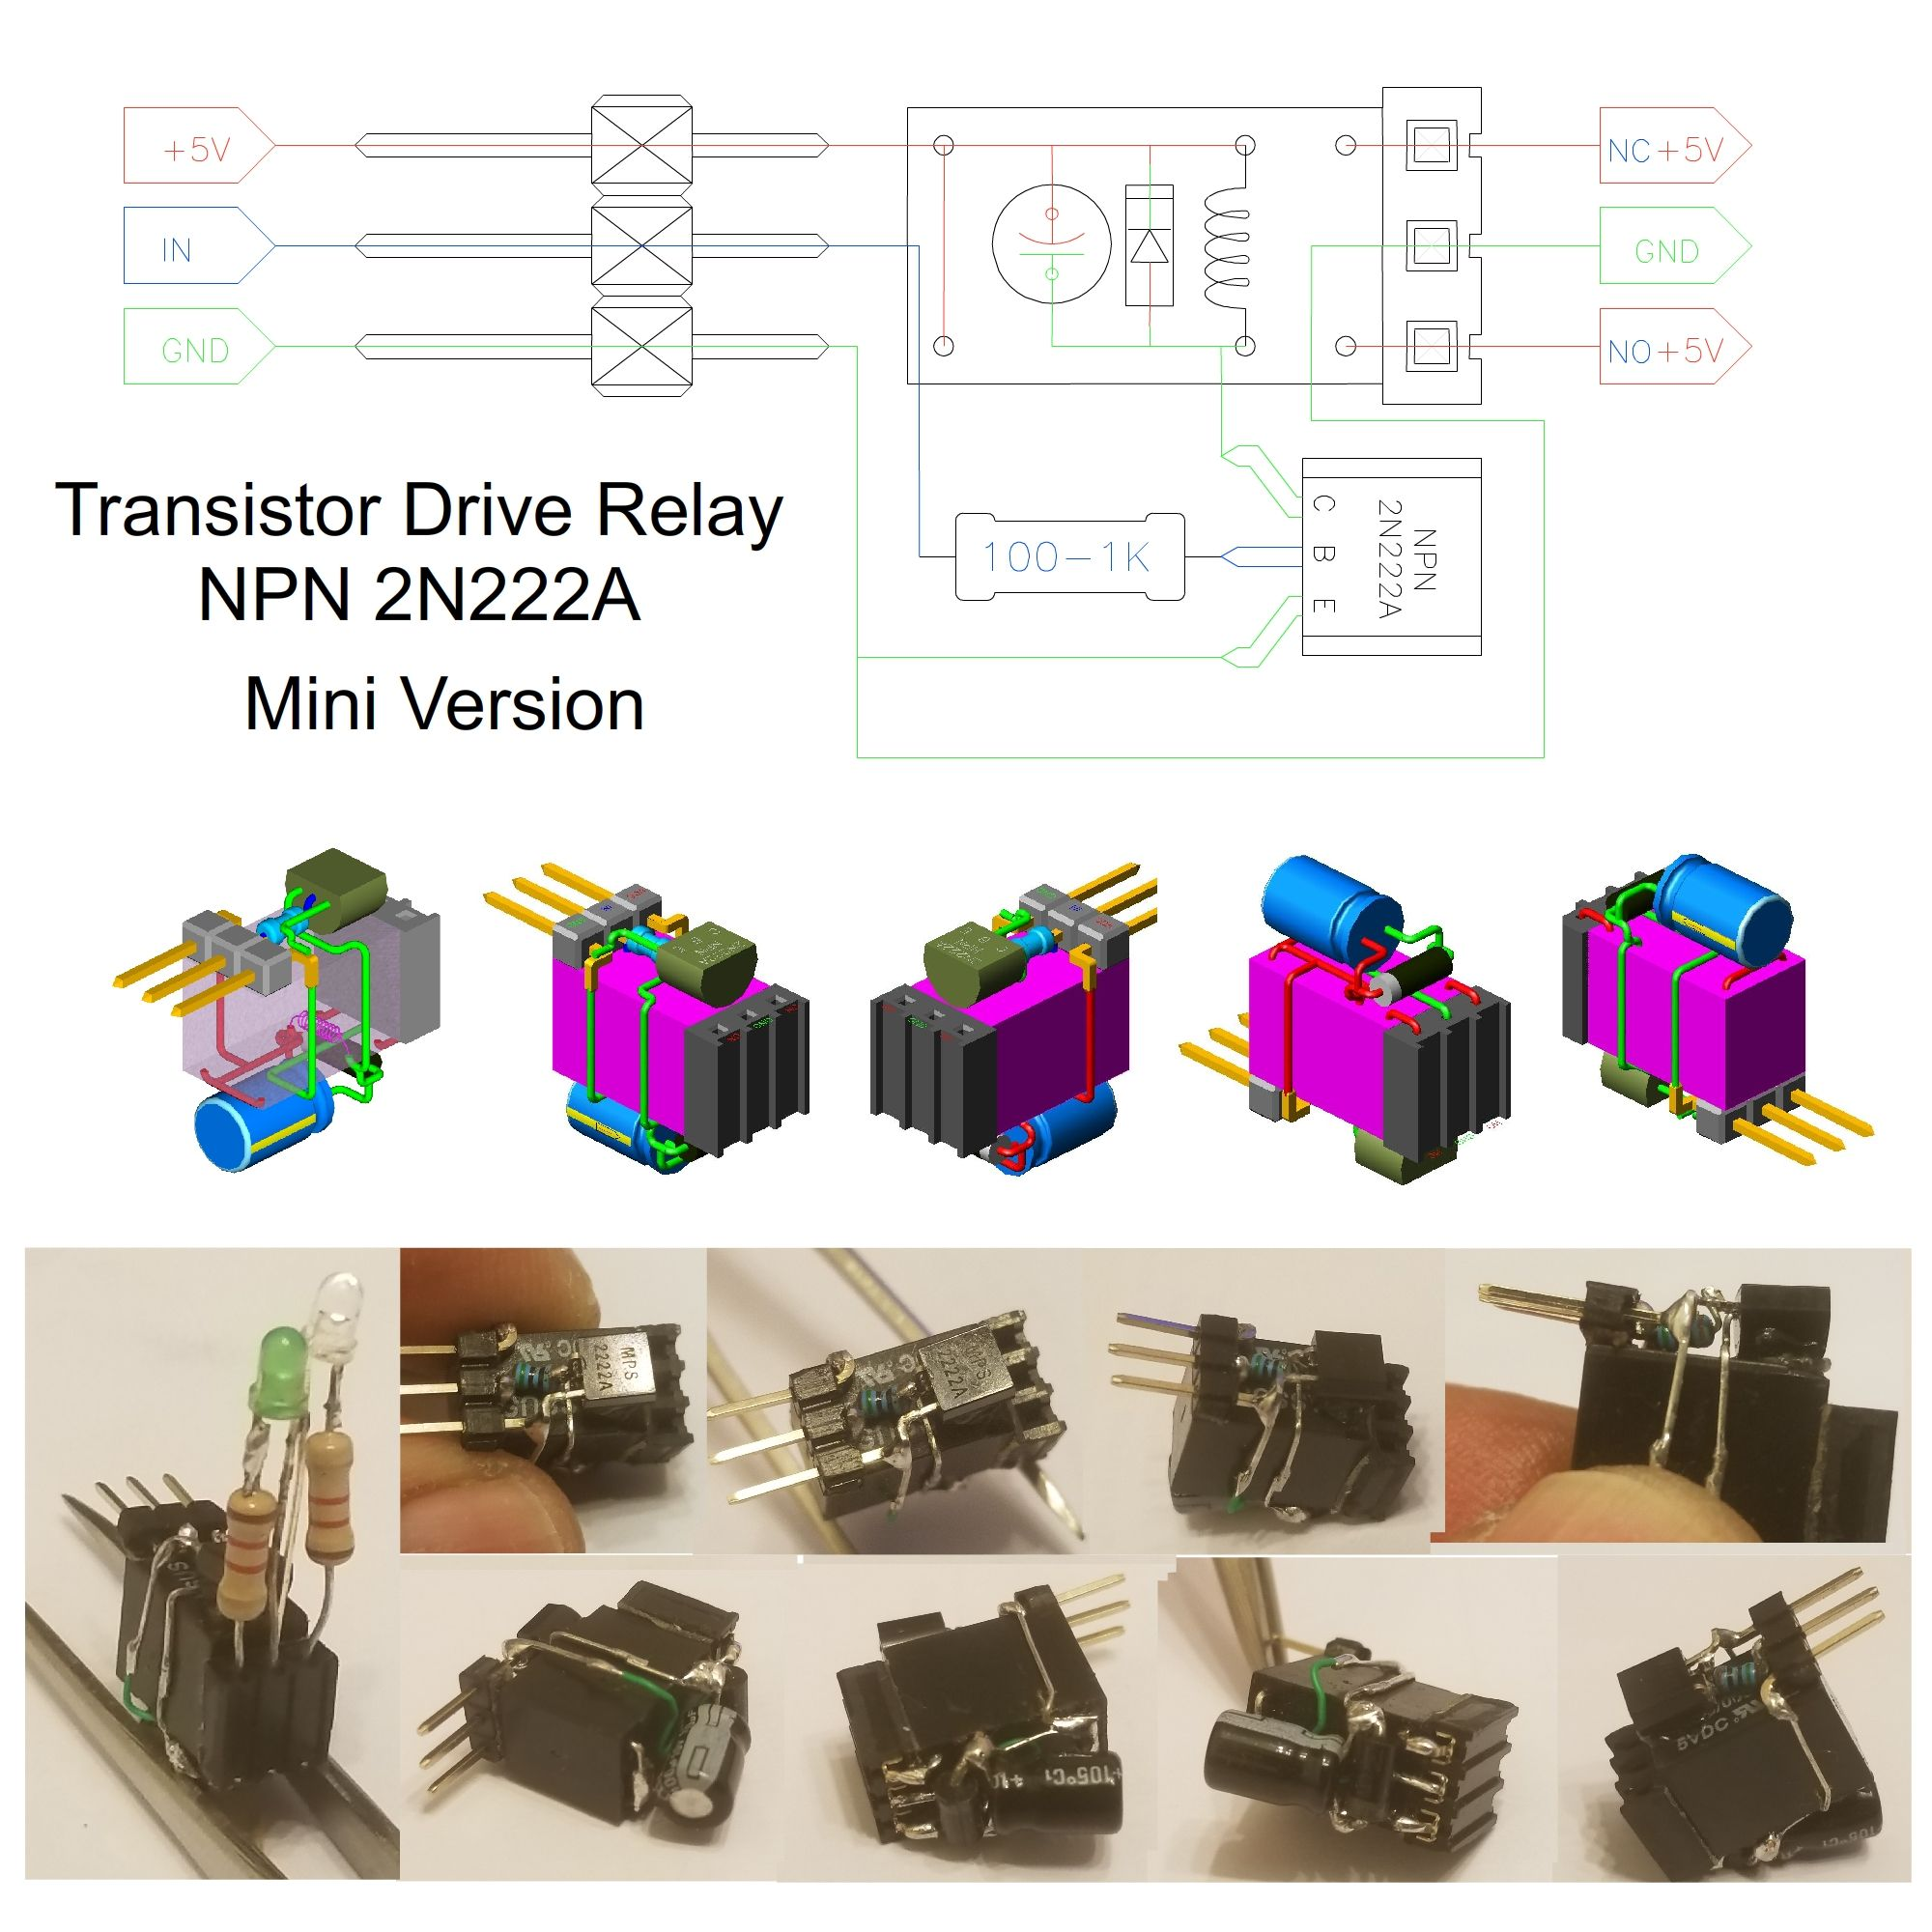 Transistor Drive Relay Npn 2n222a Mini Version 1 Diy Electronic Lightdark Switch With Schematic Diagram Wiring